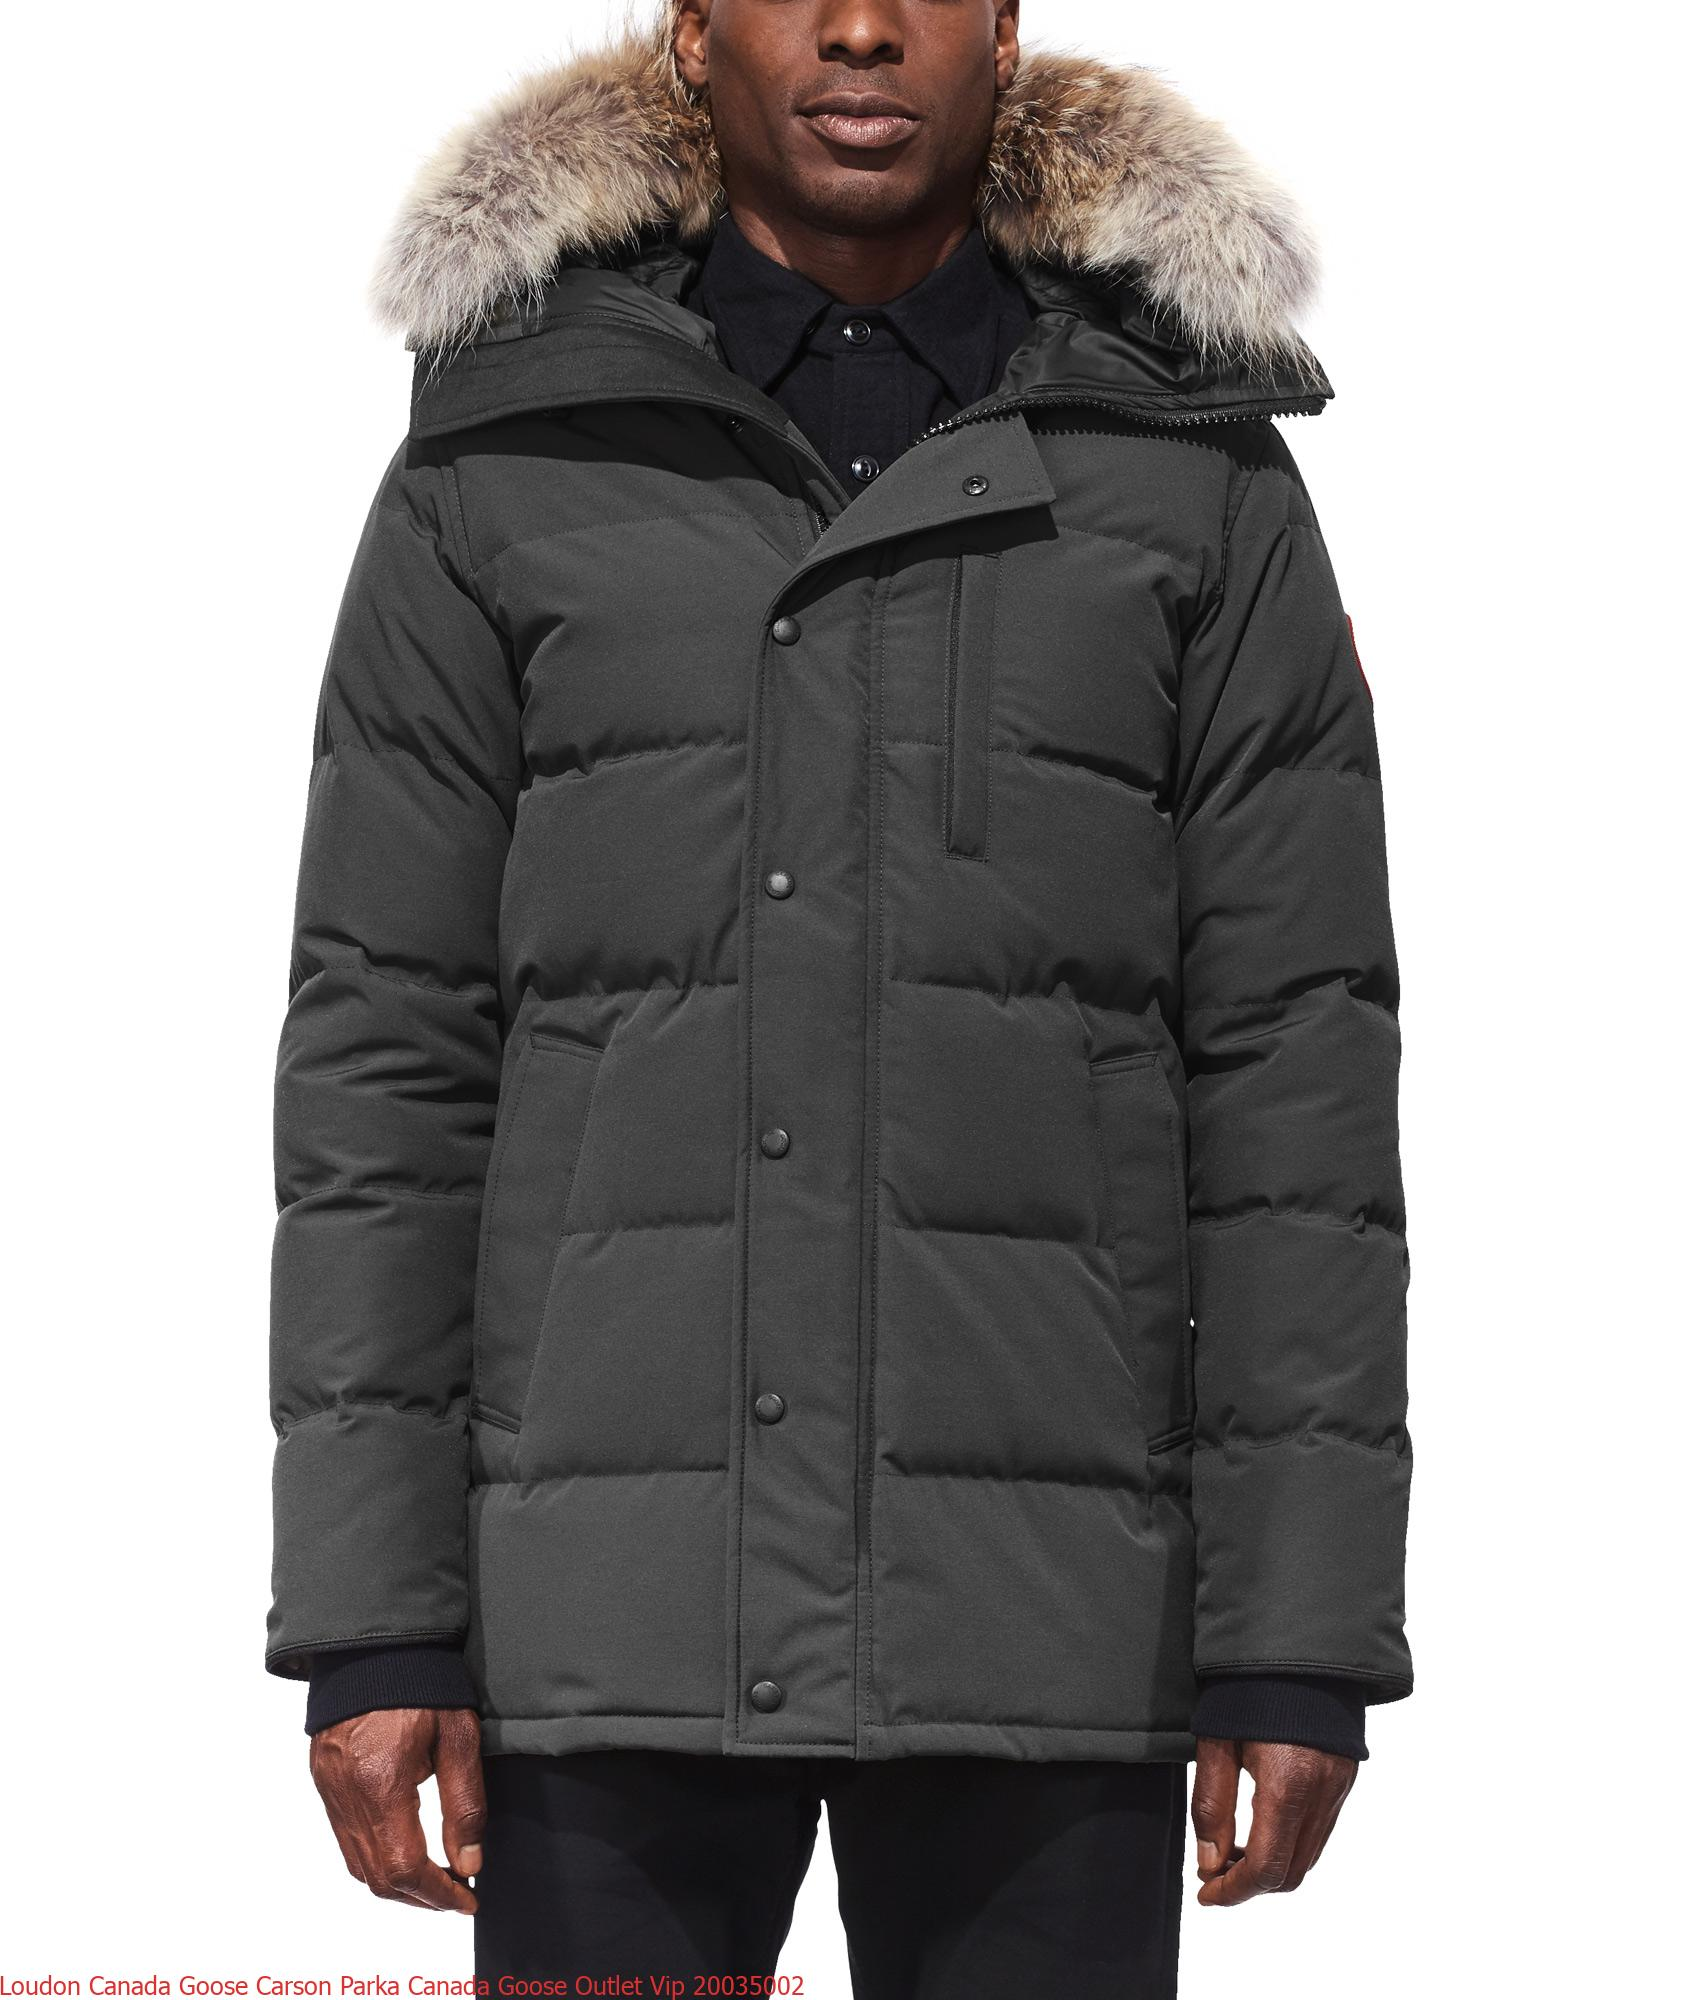 Loudon Canada Goose Carson Parka Canada Goose Outlet Vip 20035002 – Cheap  canada goose® outlet jacket clearance on sale c4c70eb84